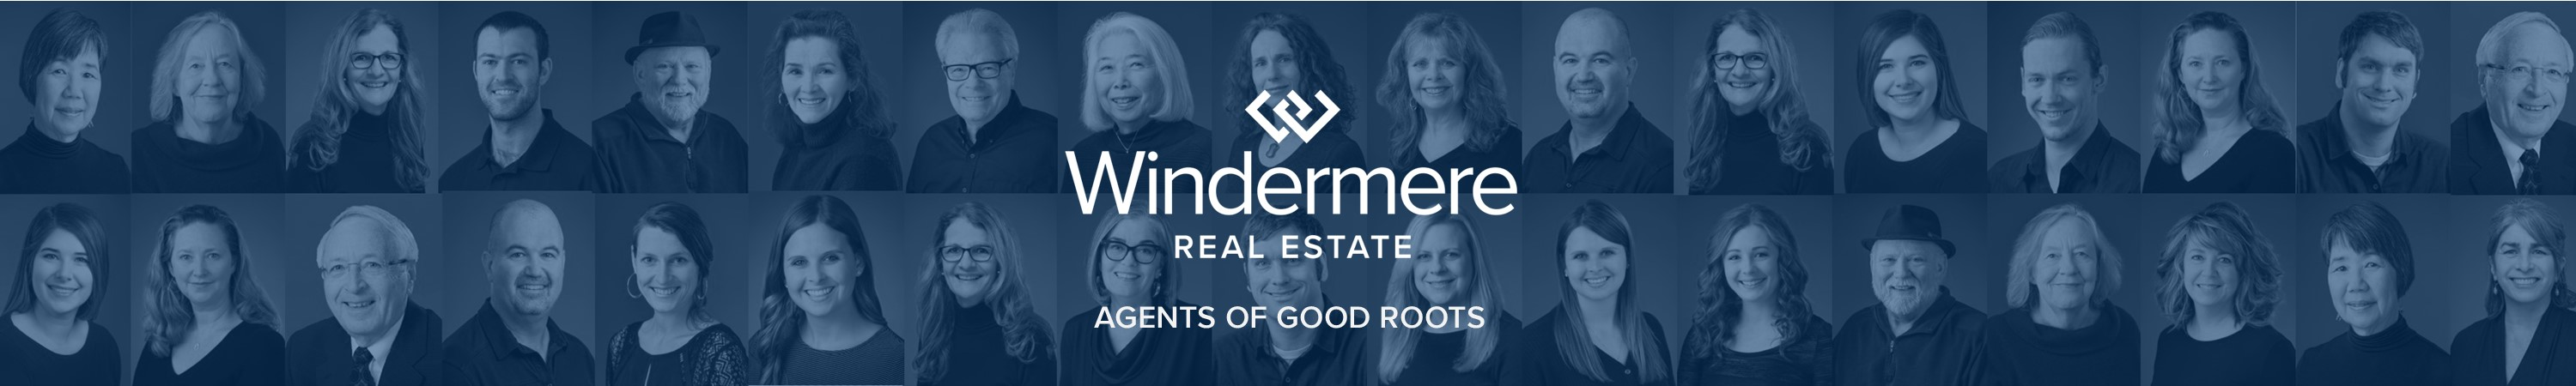 Join us Windermere Agents of Good Roots